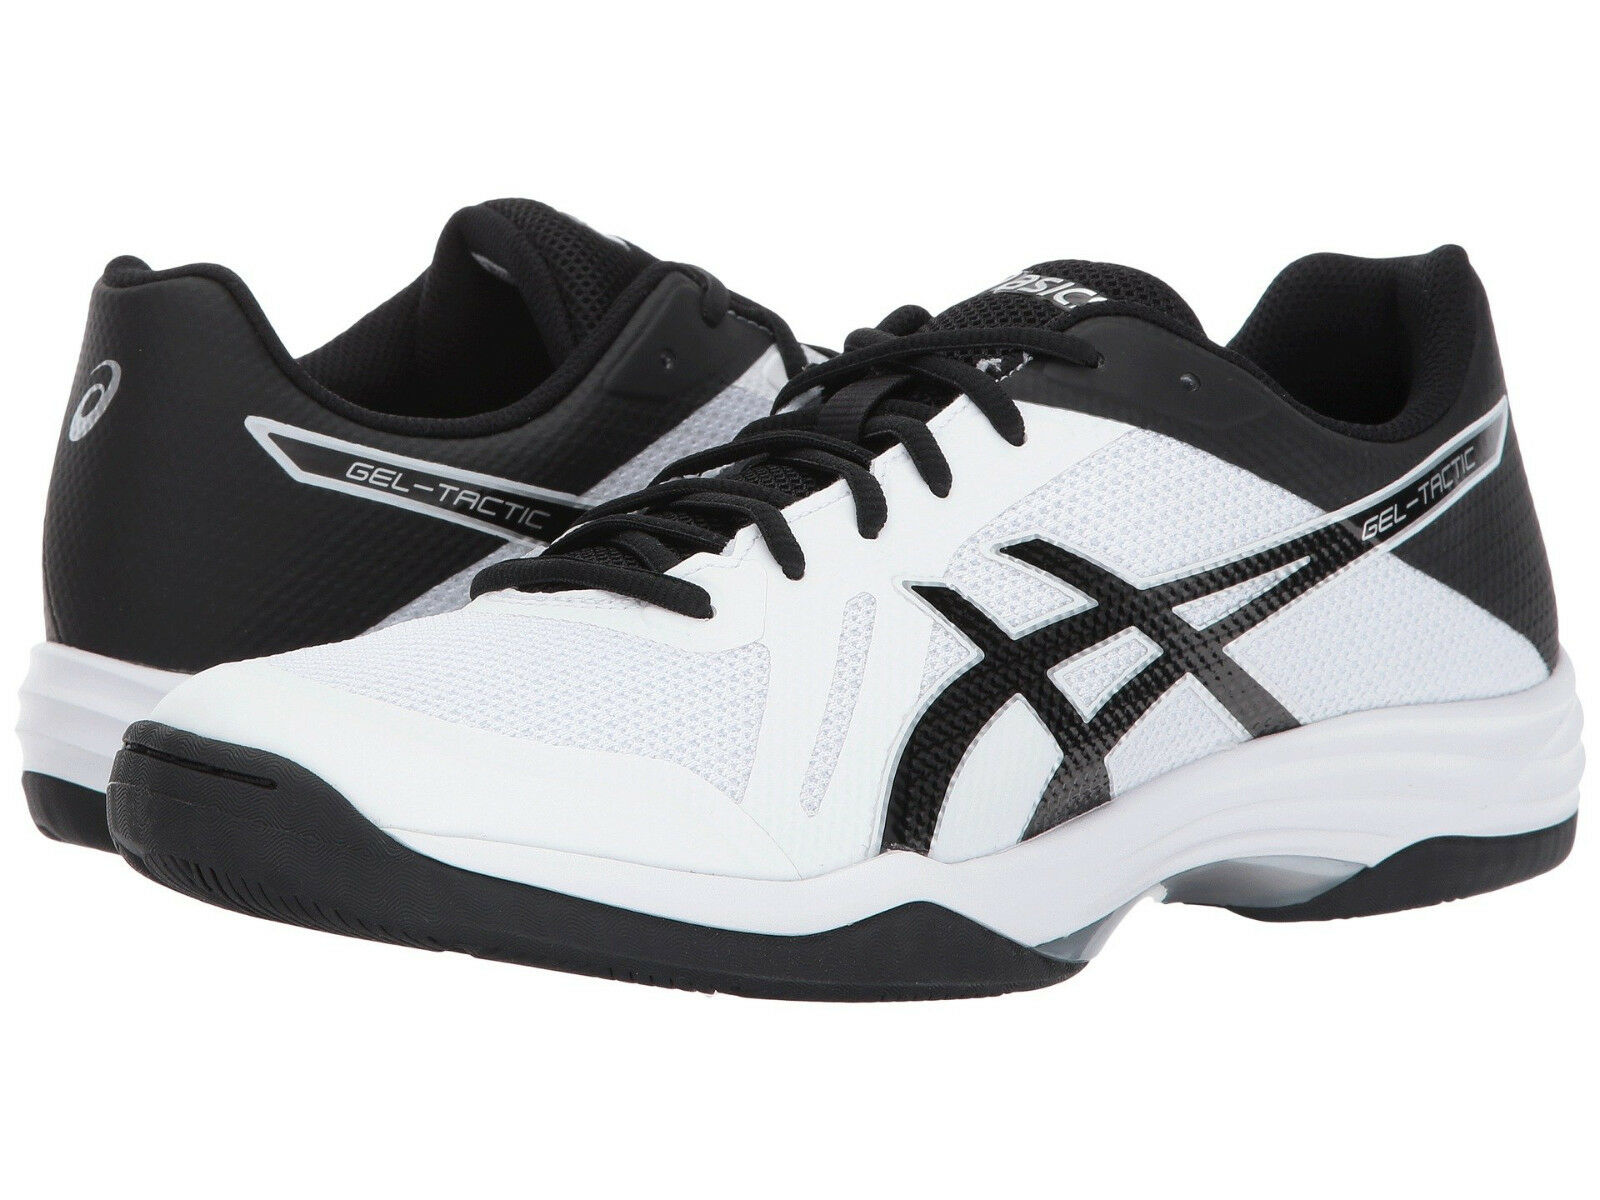 Asics Homme Gel-Tactic Sz US 15 M Blanc Synthetic w/Balck Sneakers Chaussures 100.00